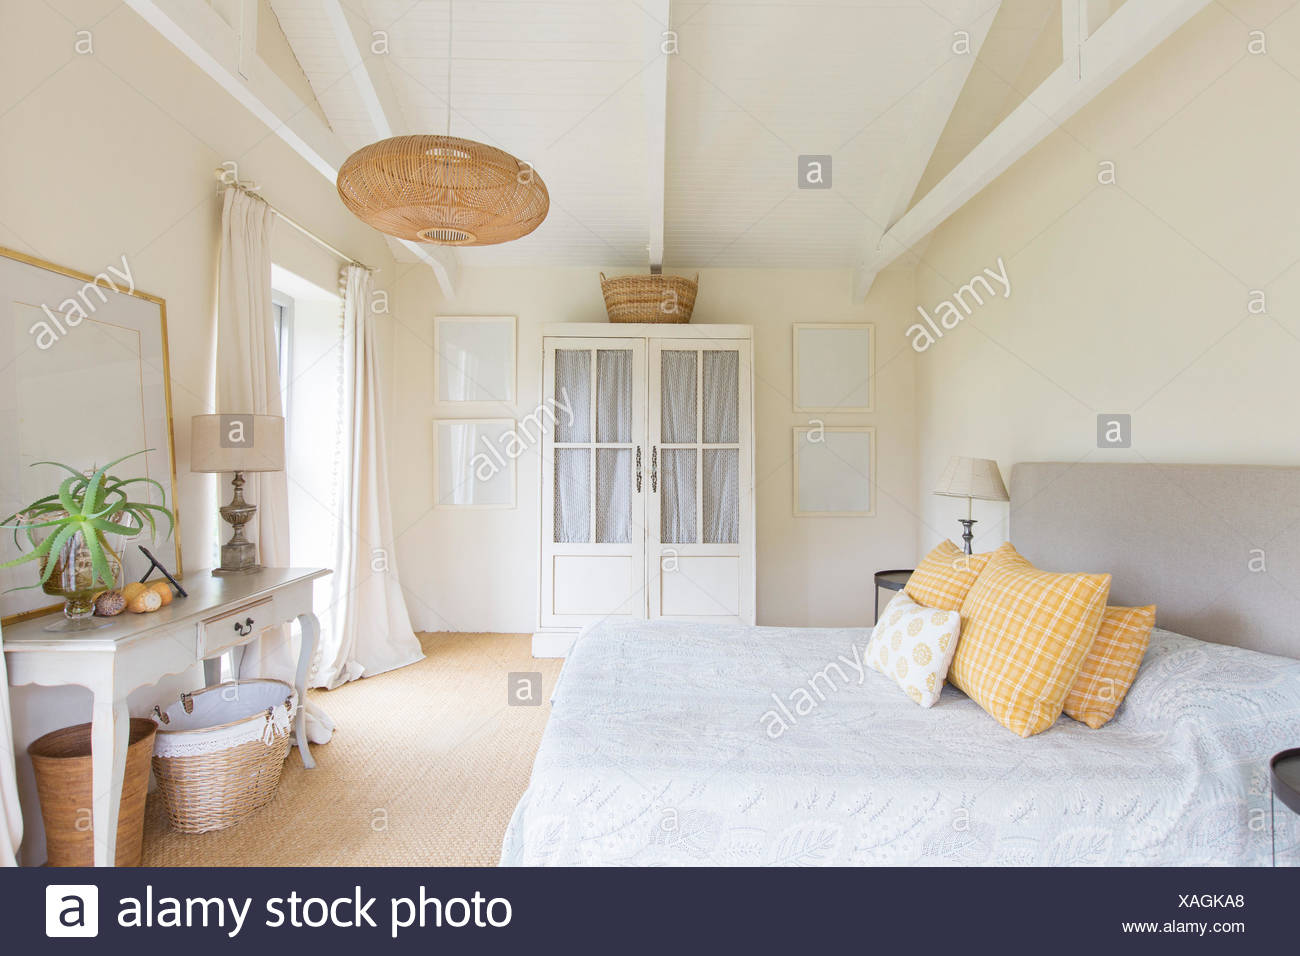 Bed and cabinet in bedroom of rustic house - Stock Image